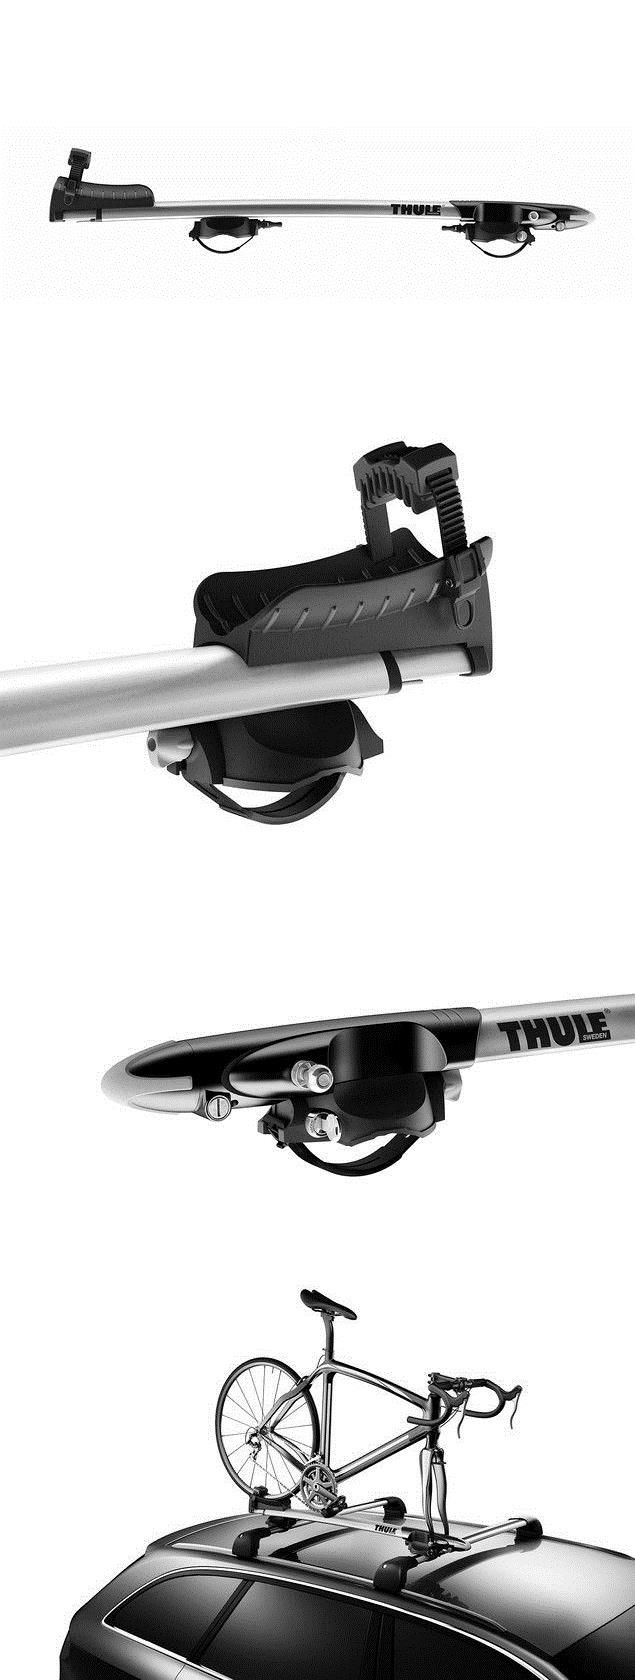 Car and Truck Racks 177849: Thule Sprint Xt Roof Mounted Bike Rack Carrier, New In Box -> BUY IT NOW ONLY: $170 on eBay!